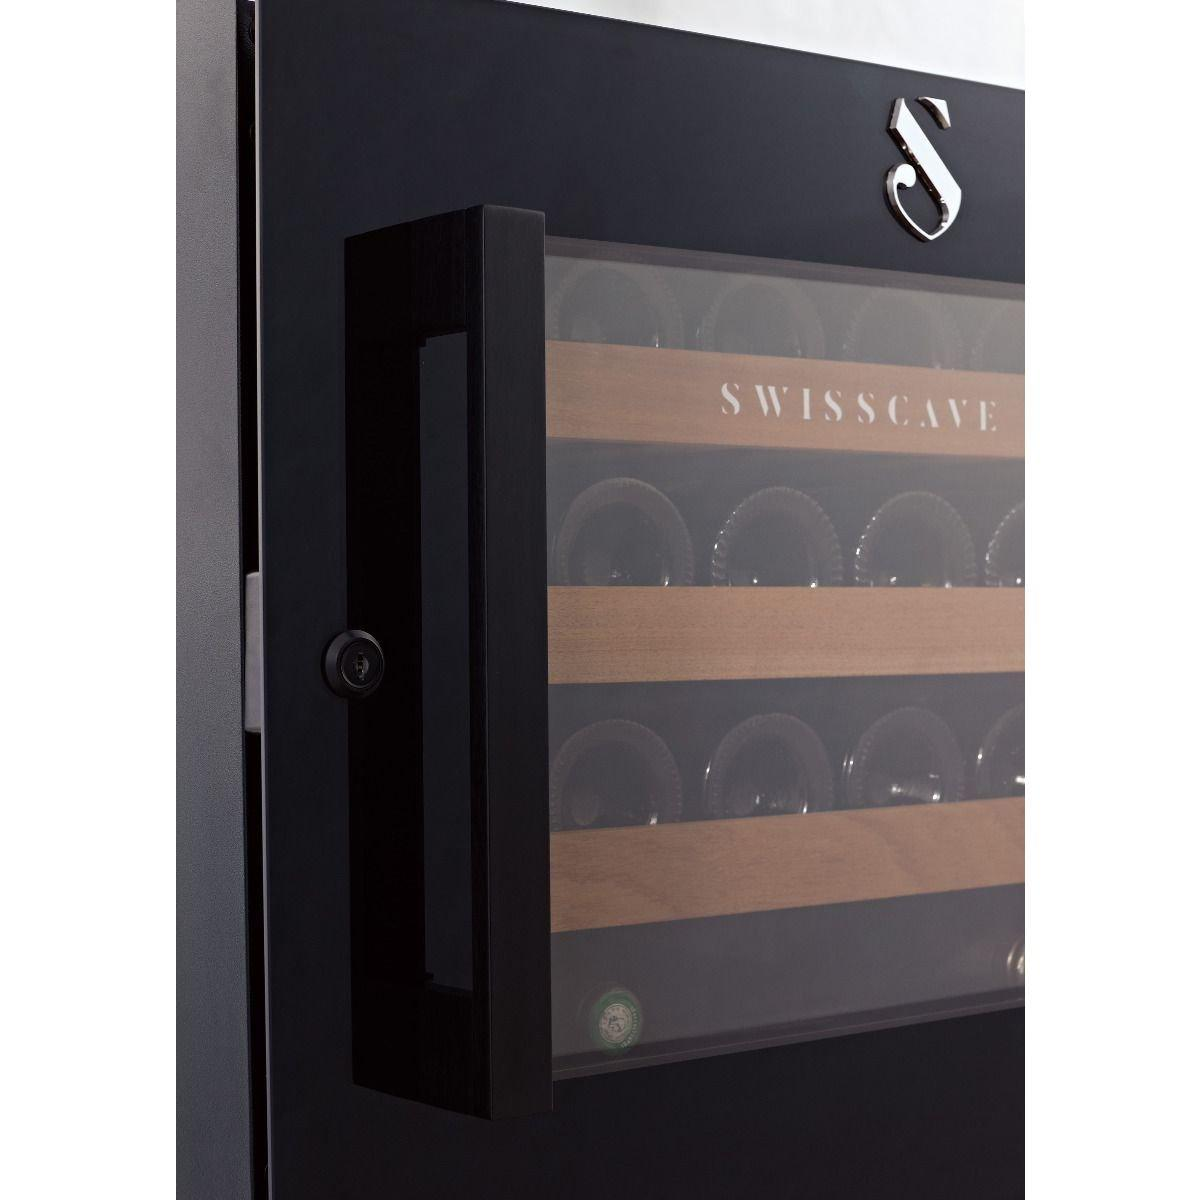 Swisscave -Kitchen Integrated - Single Zone Wine Cooler WLI-160F (48 BOT) - winestorageuk